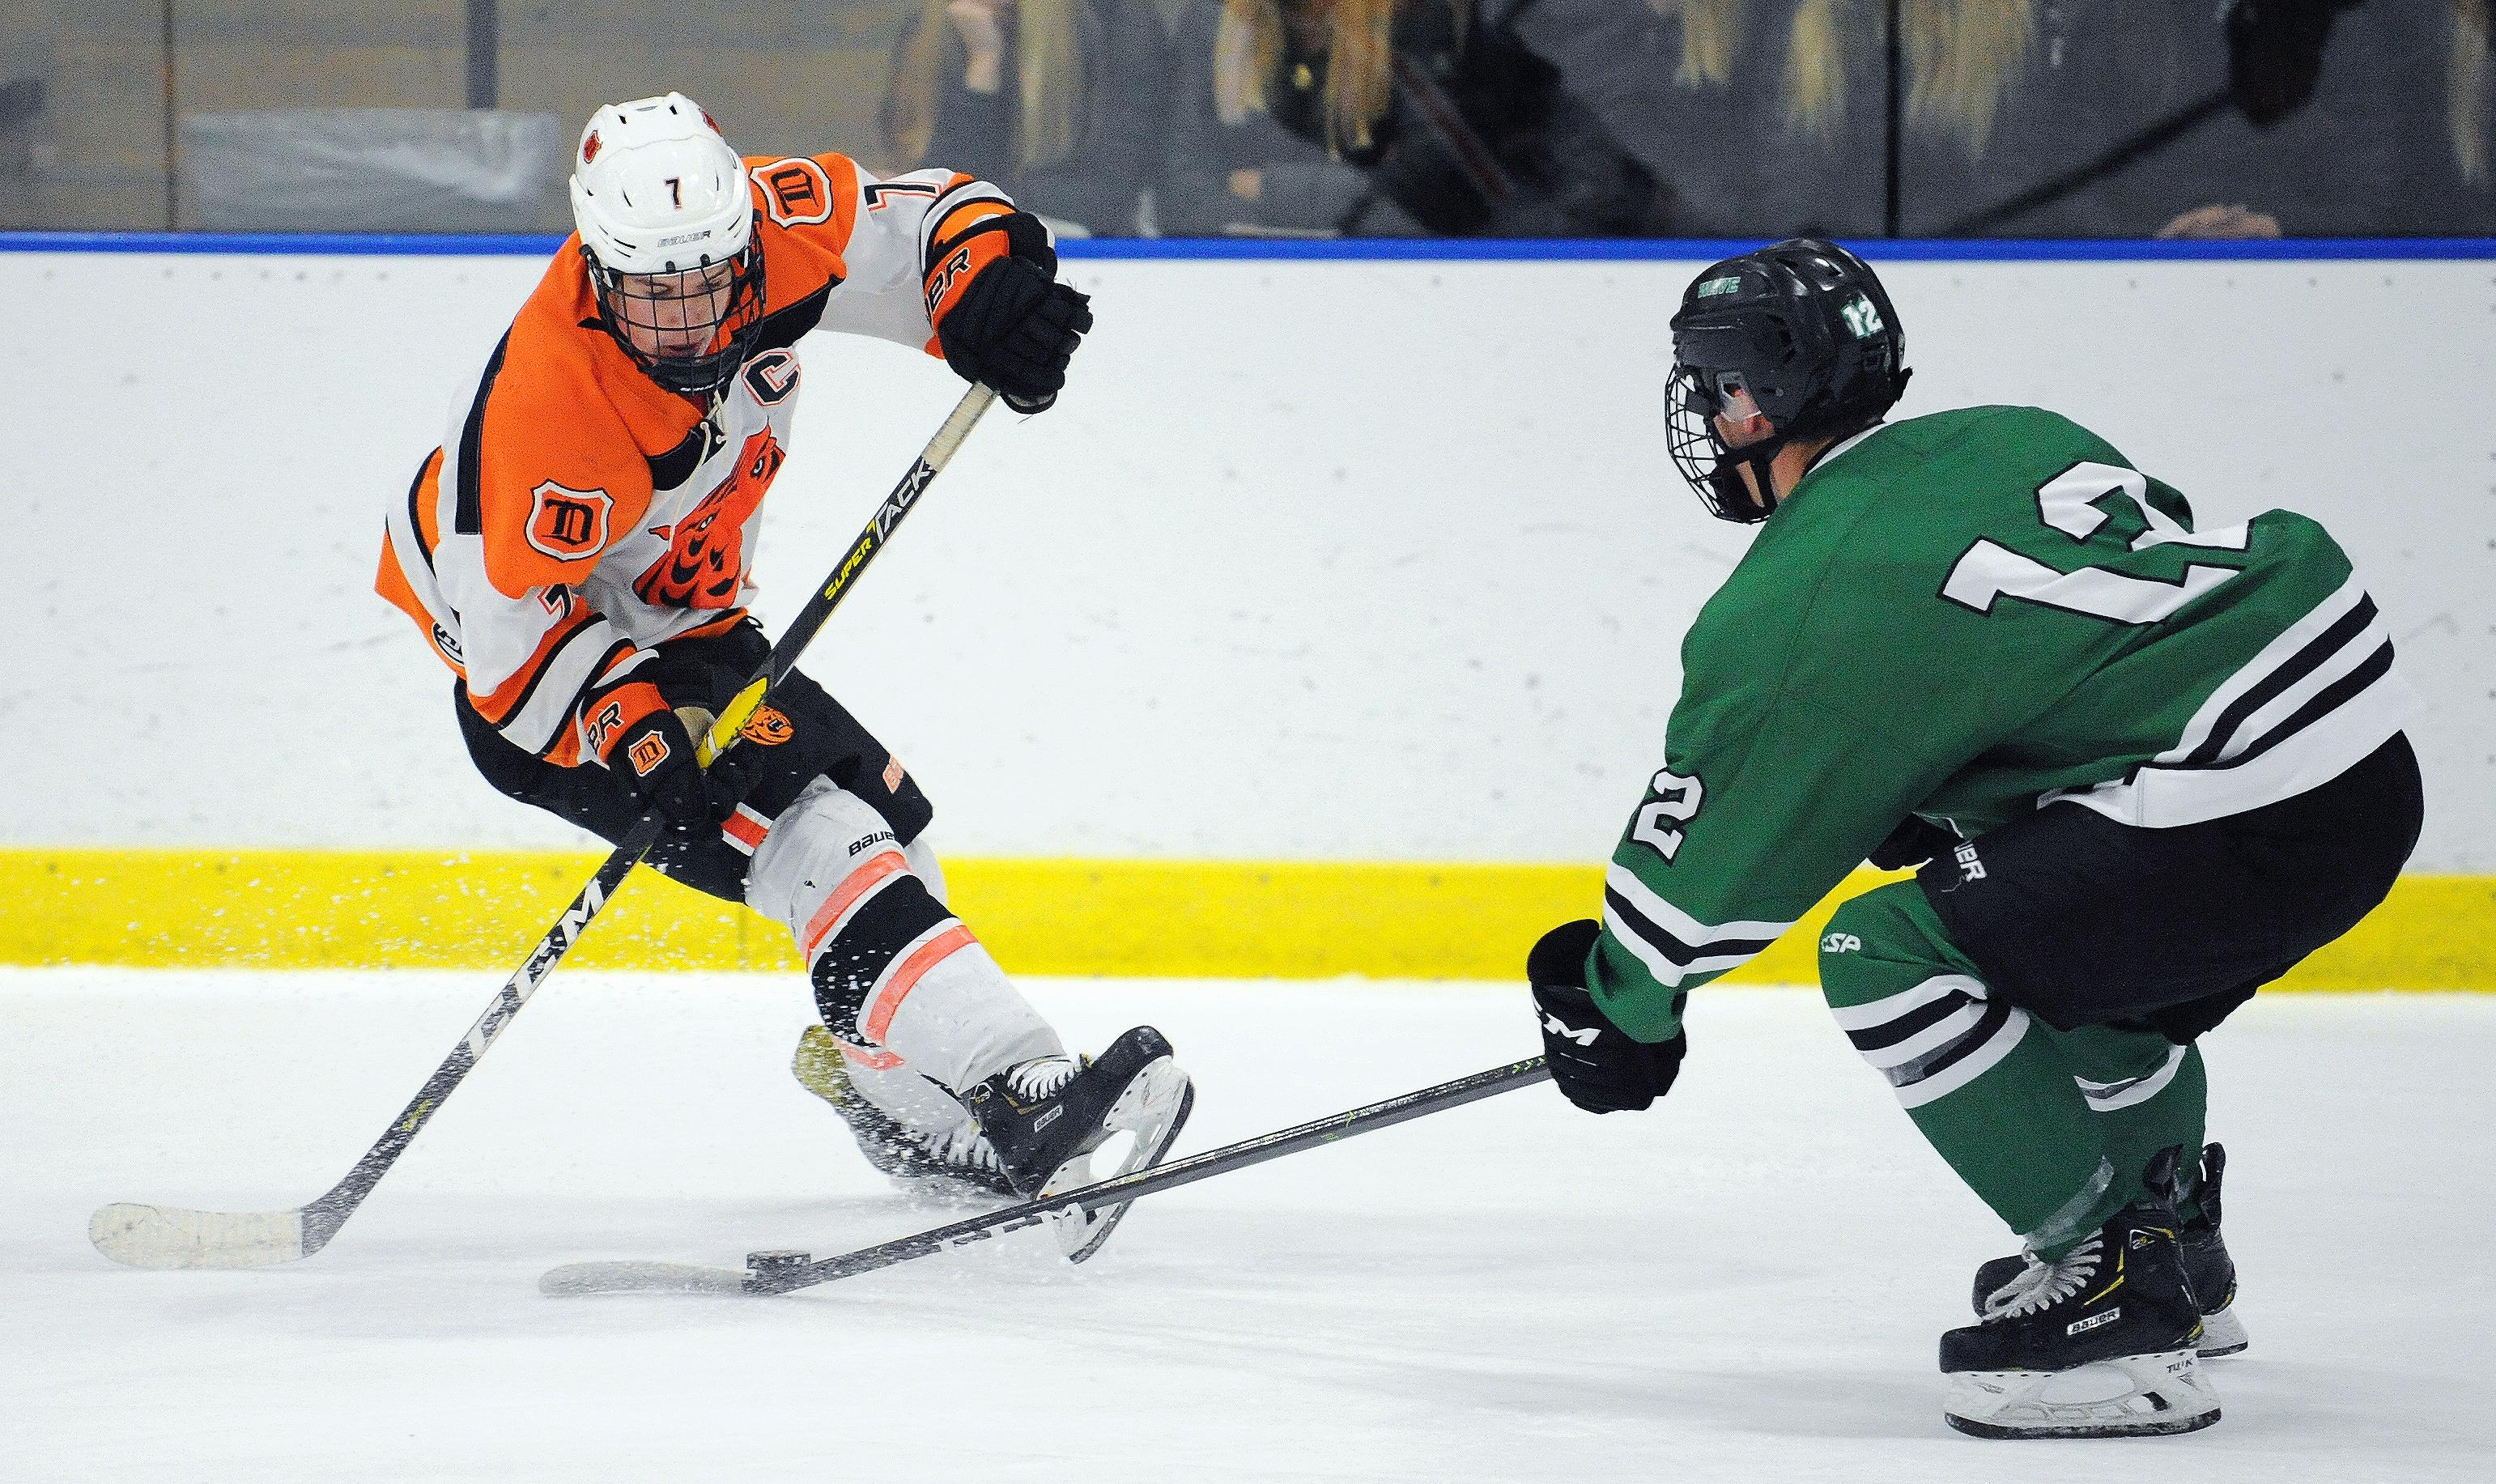 Delano senior Kory Dunnigan attempts to work his way past East Grand Forks defenseman Josh Nelson on Saturday in Delano. Photo by Loren Nelson, LegacyHockeyPhotography.com